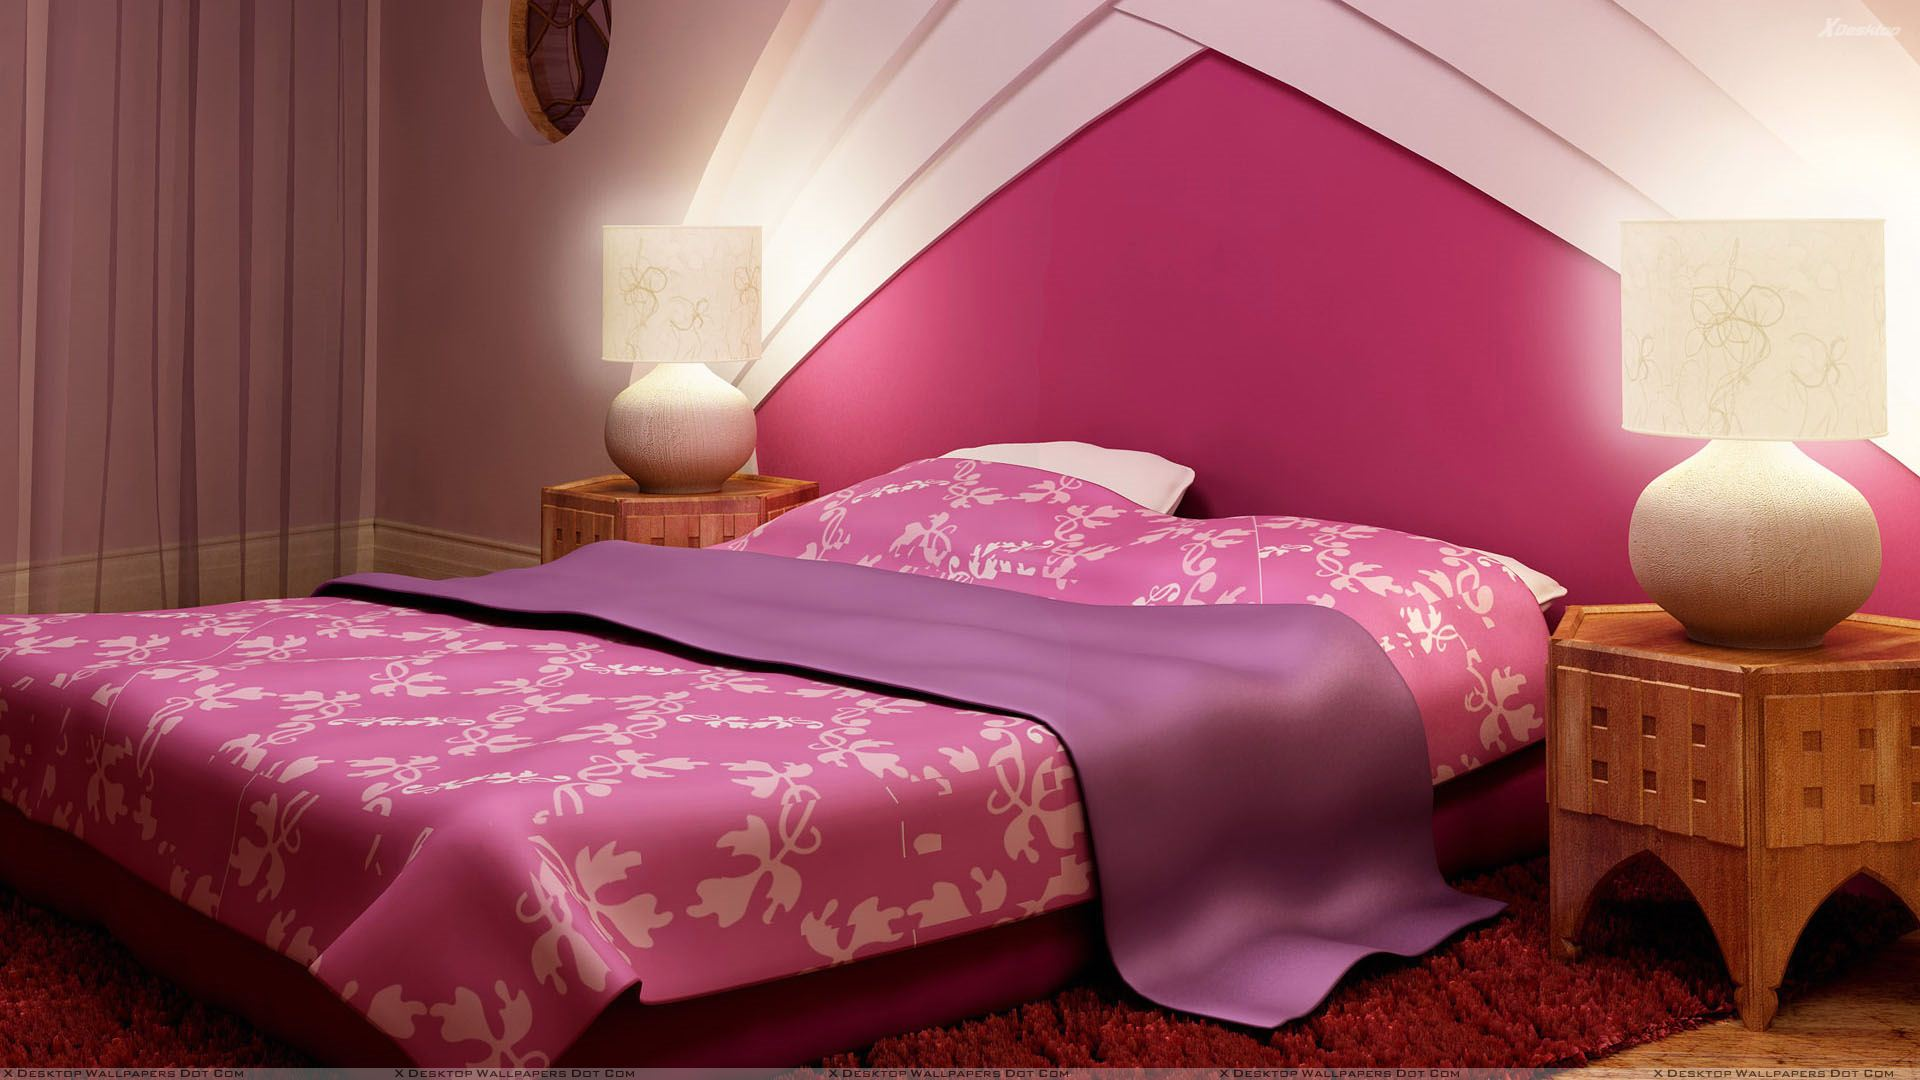 Pink background and pink bed in bedroom wallpaper for Interior design bedroom pink